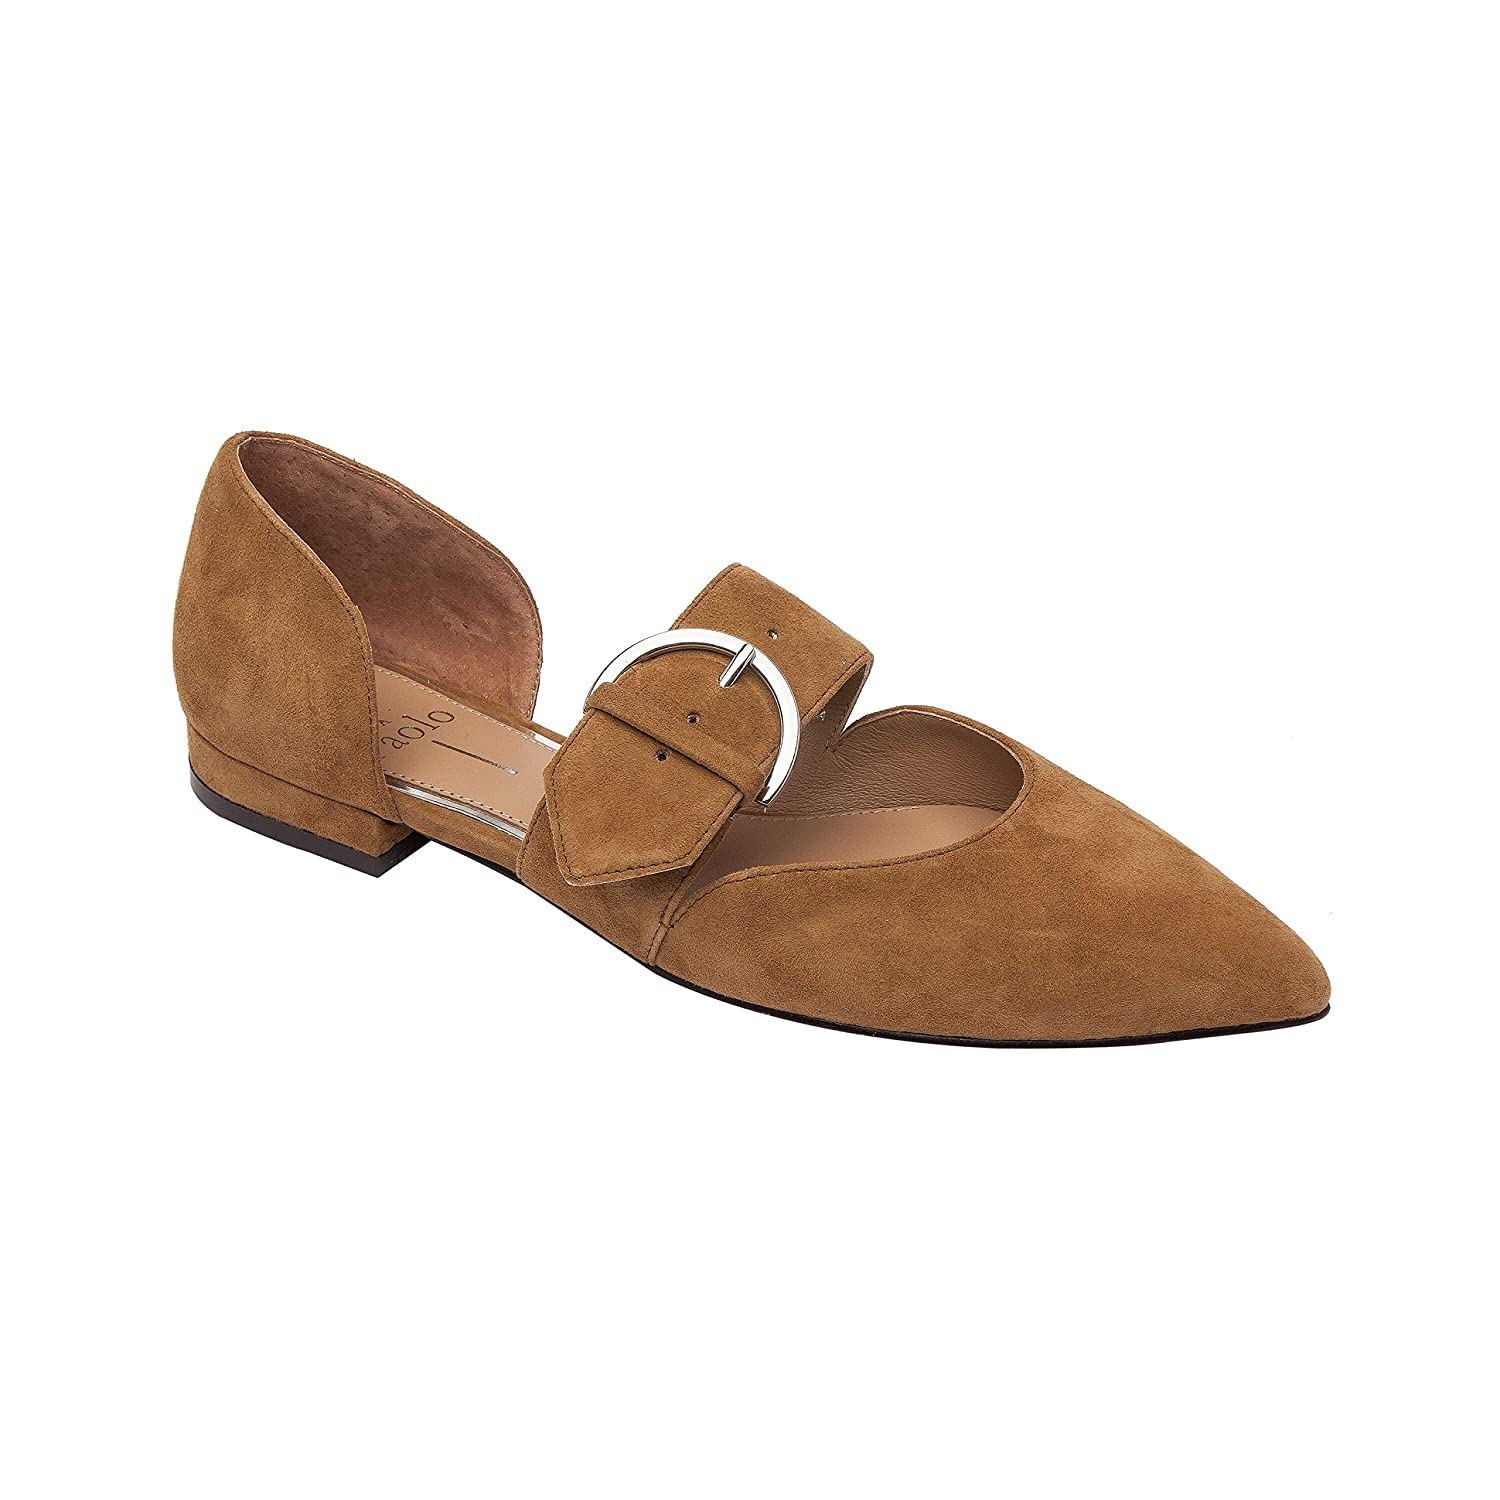 Dean | Women's Two Piece Pointy Toe Comfortable Leather or Suede Ballet Flat B07DM9V9L8 4.5 M US|Toffee Suede